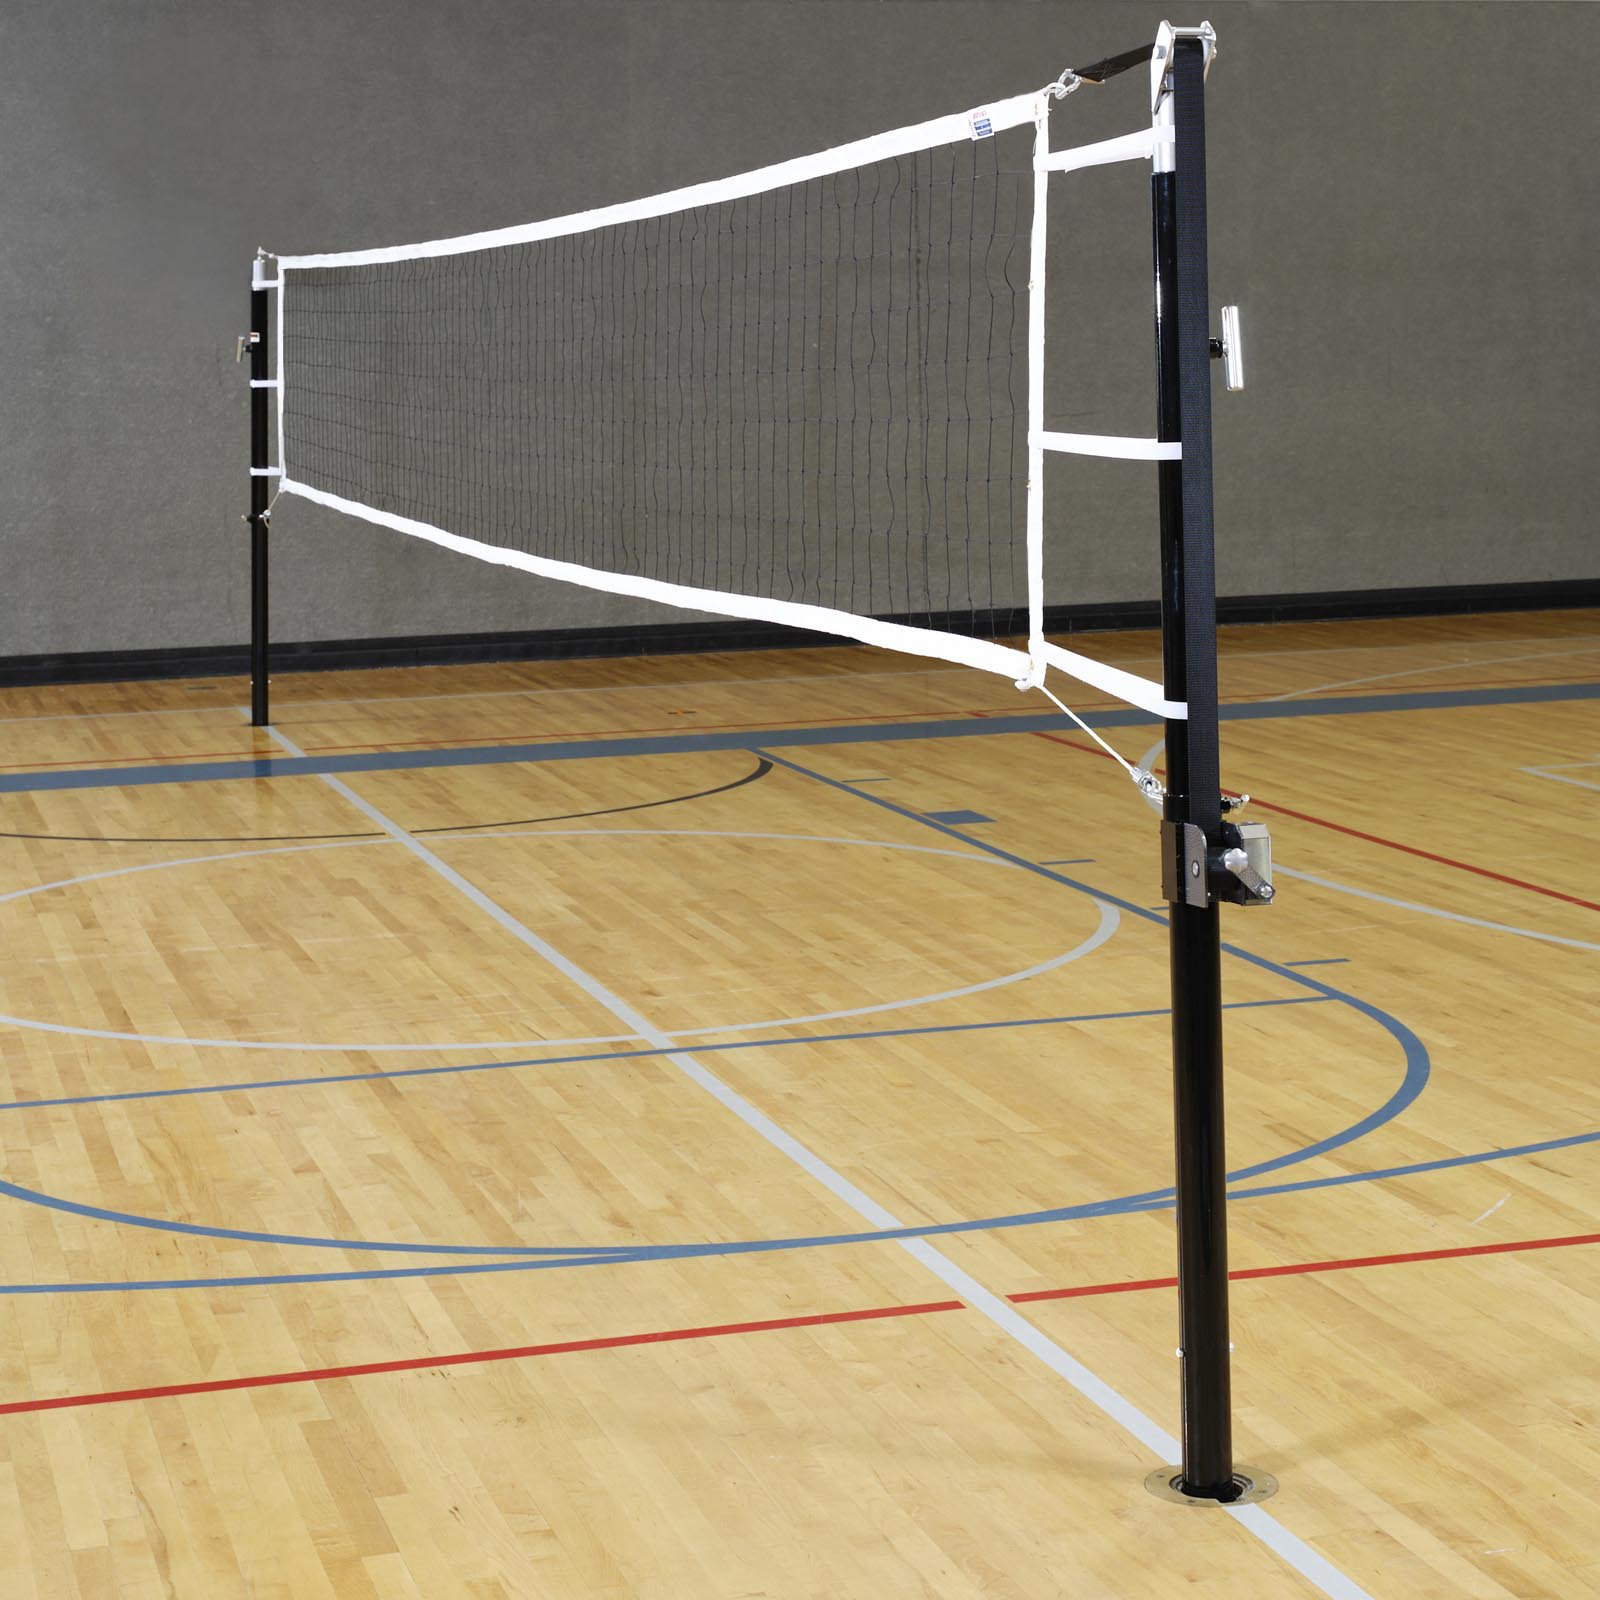 Stackhouse Regulation Volleyball Standards & Net System - Steel